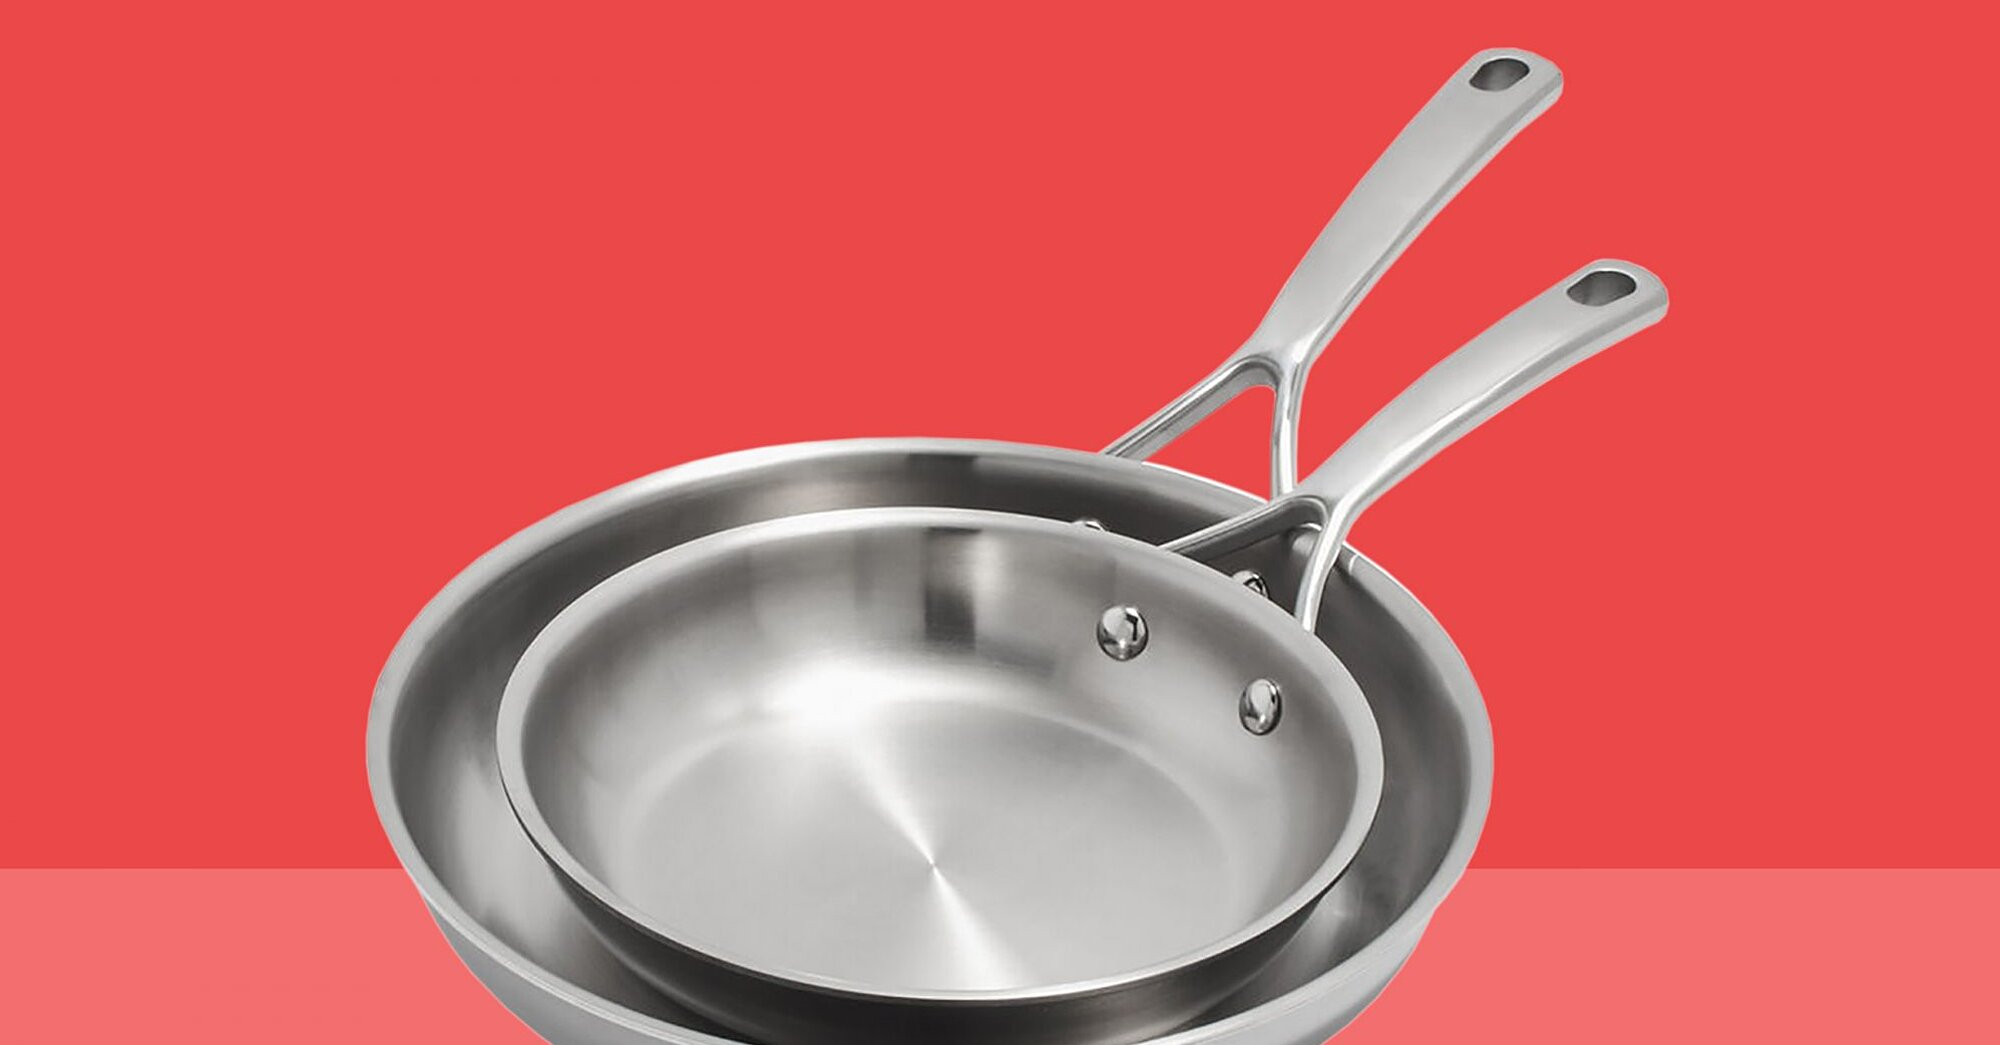 The Best Frying Pans to Buy Online, From Chef-Approved Options to Budget-Friendly Picks